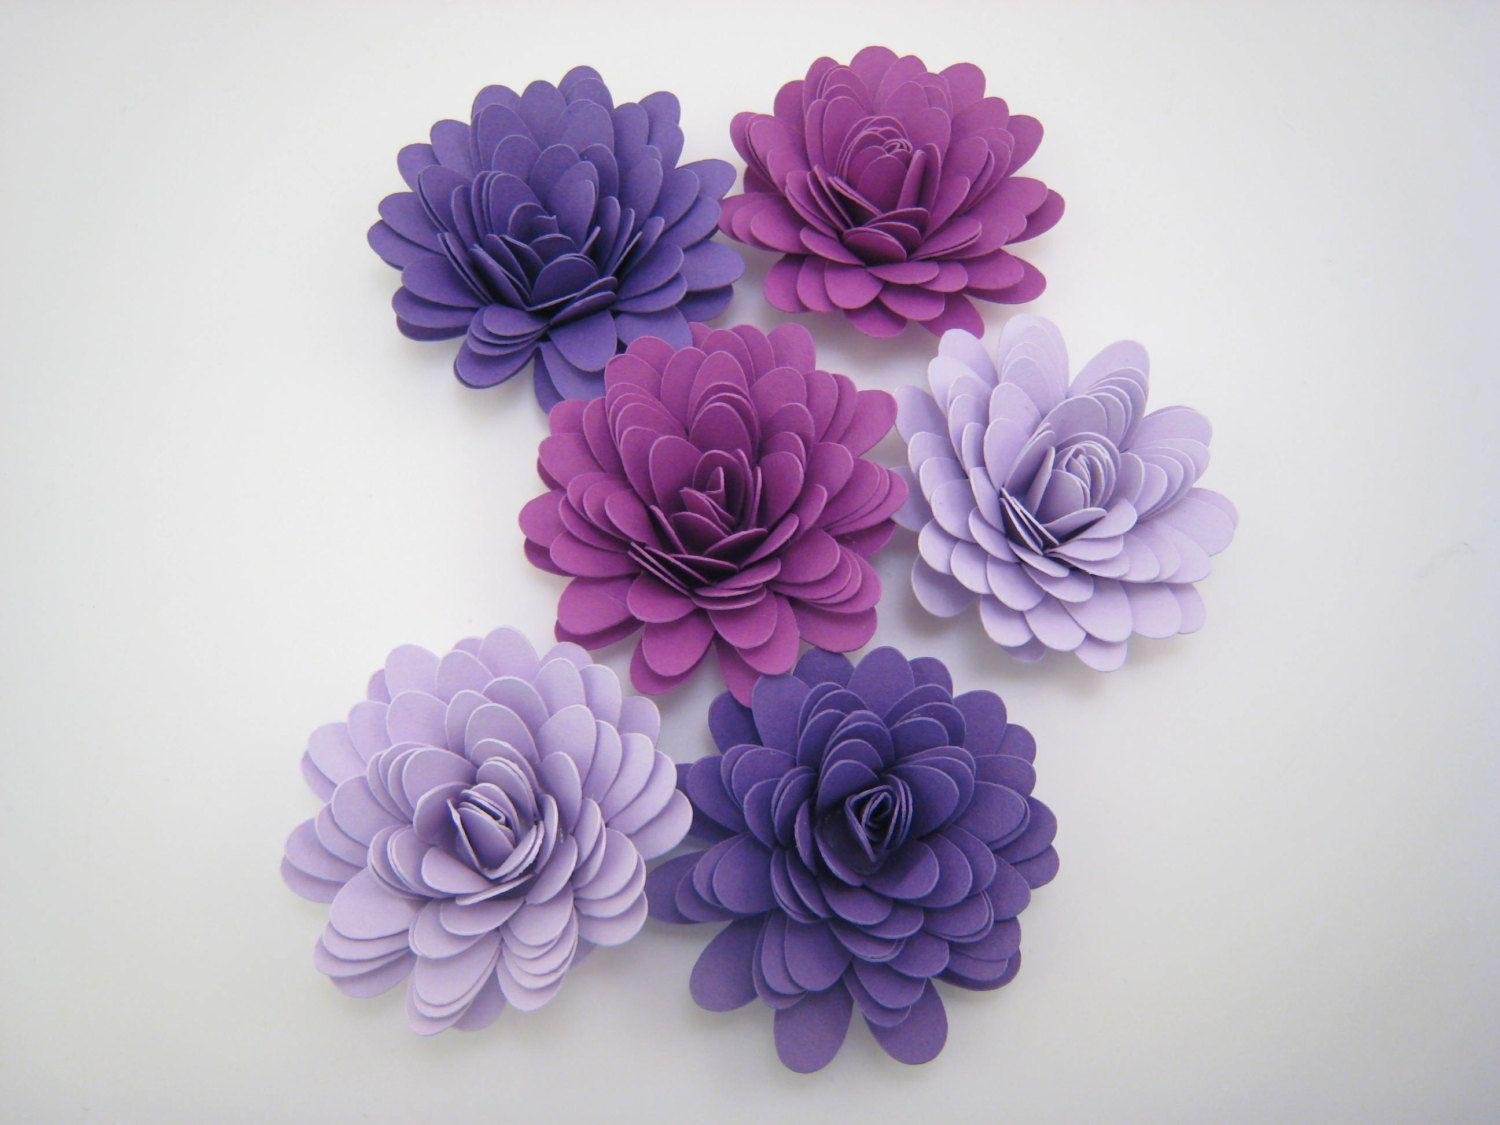 "Flores em papel – 30 unidades por R$53,63 no <a href=""https://www.etsy.com/pt/listing/178358259/paper-flowers-flower-embellishments?ref=related-3"" target=""_blank"">Etsy</a>"